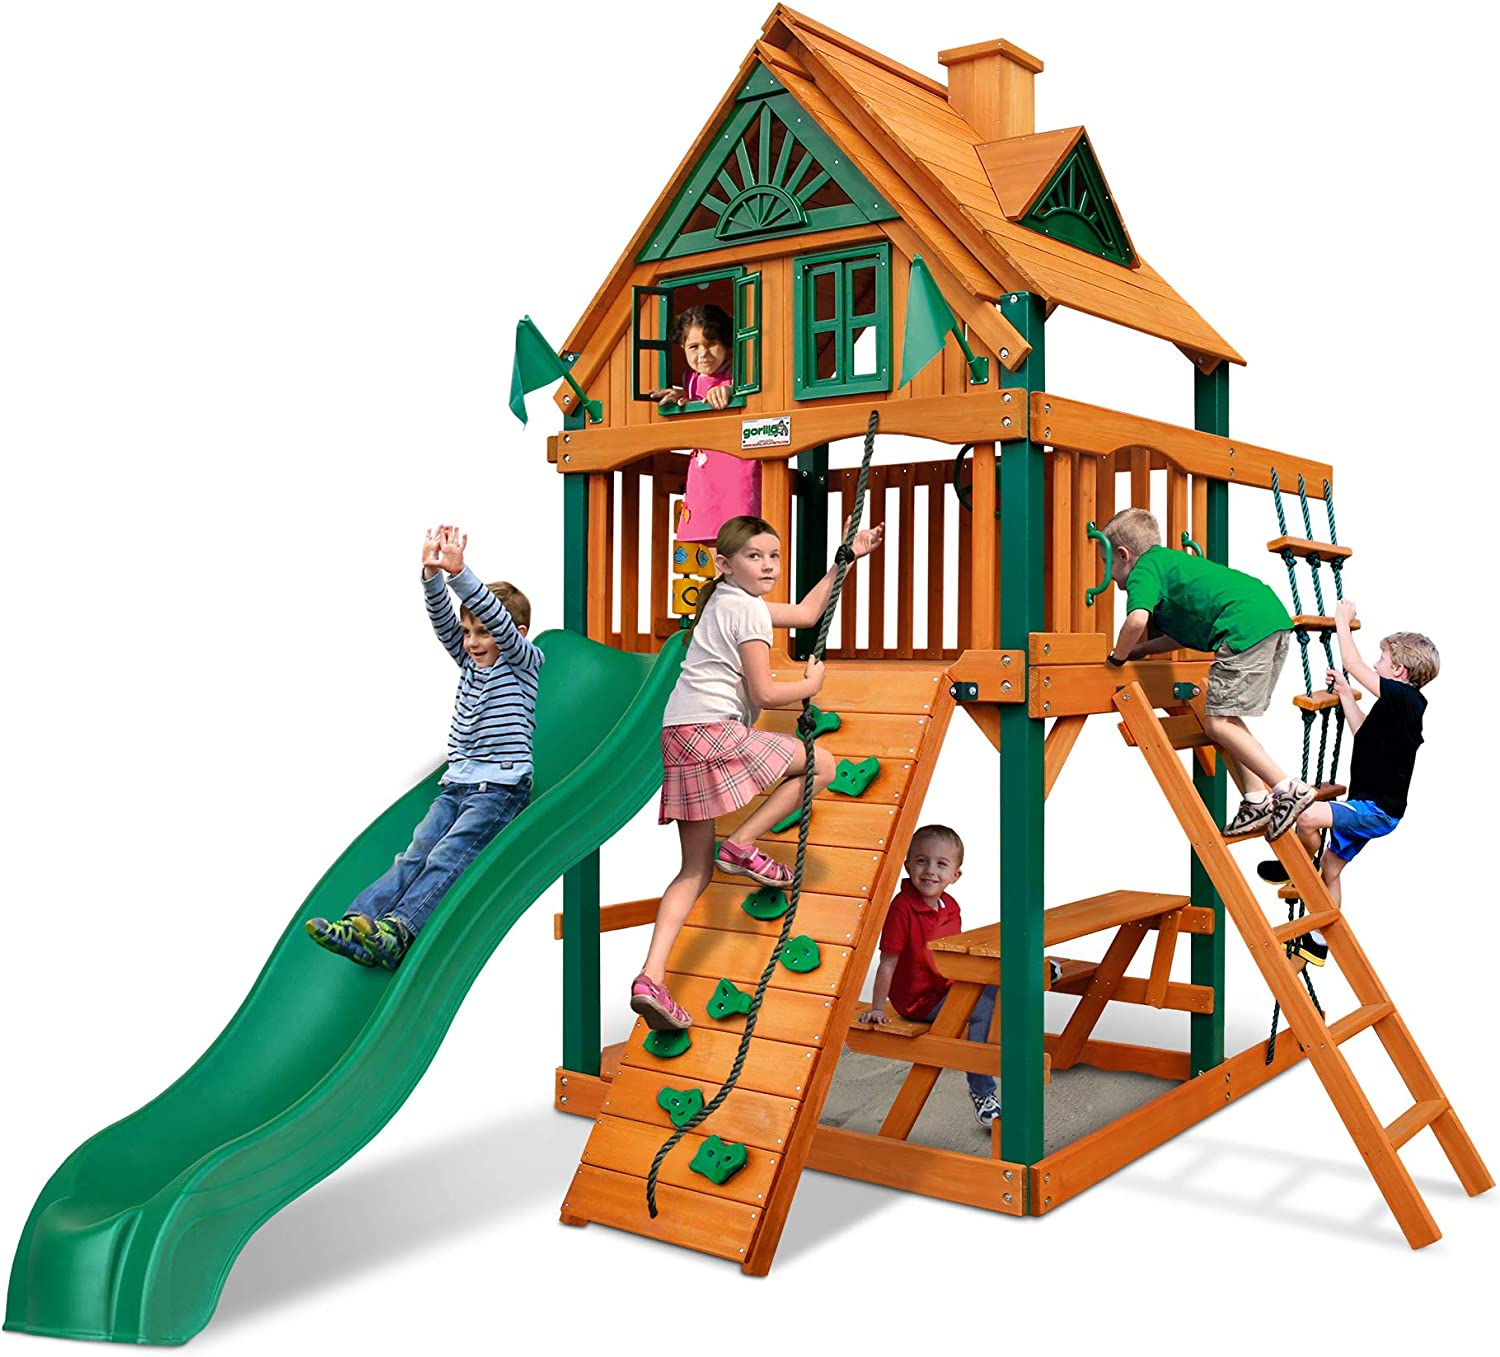 Gorilla Playsets 01-0062-TS Chateau Treehouse Tower Wooden Swing Set with Timber Shield Posts, Rock Climbing Wall, and Alpine Wave Slide